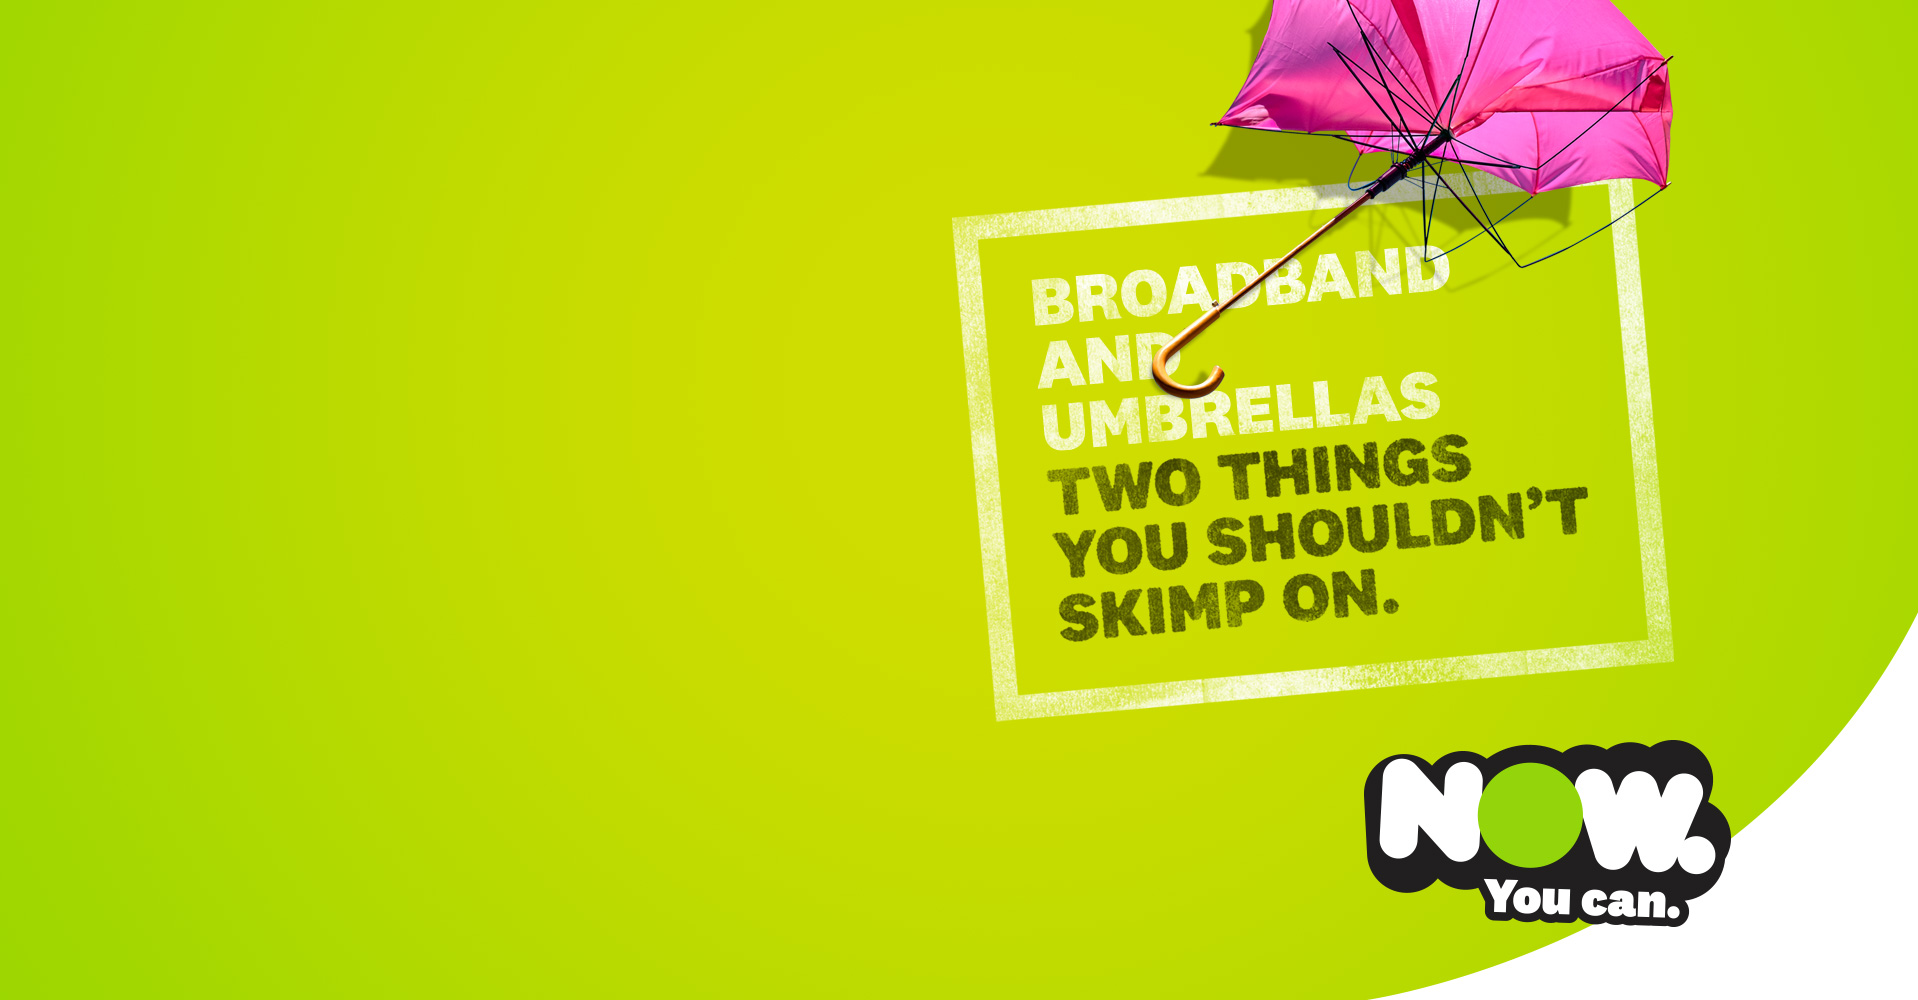 NOW 'Two Things' Campaign